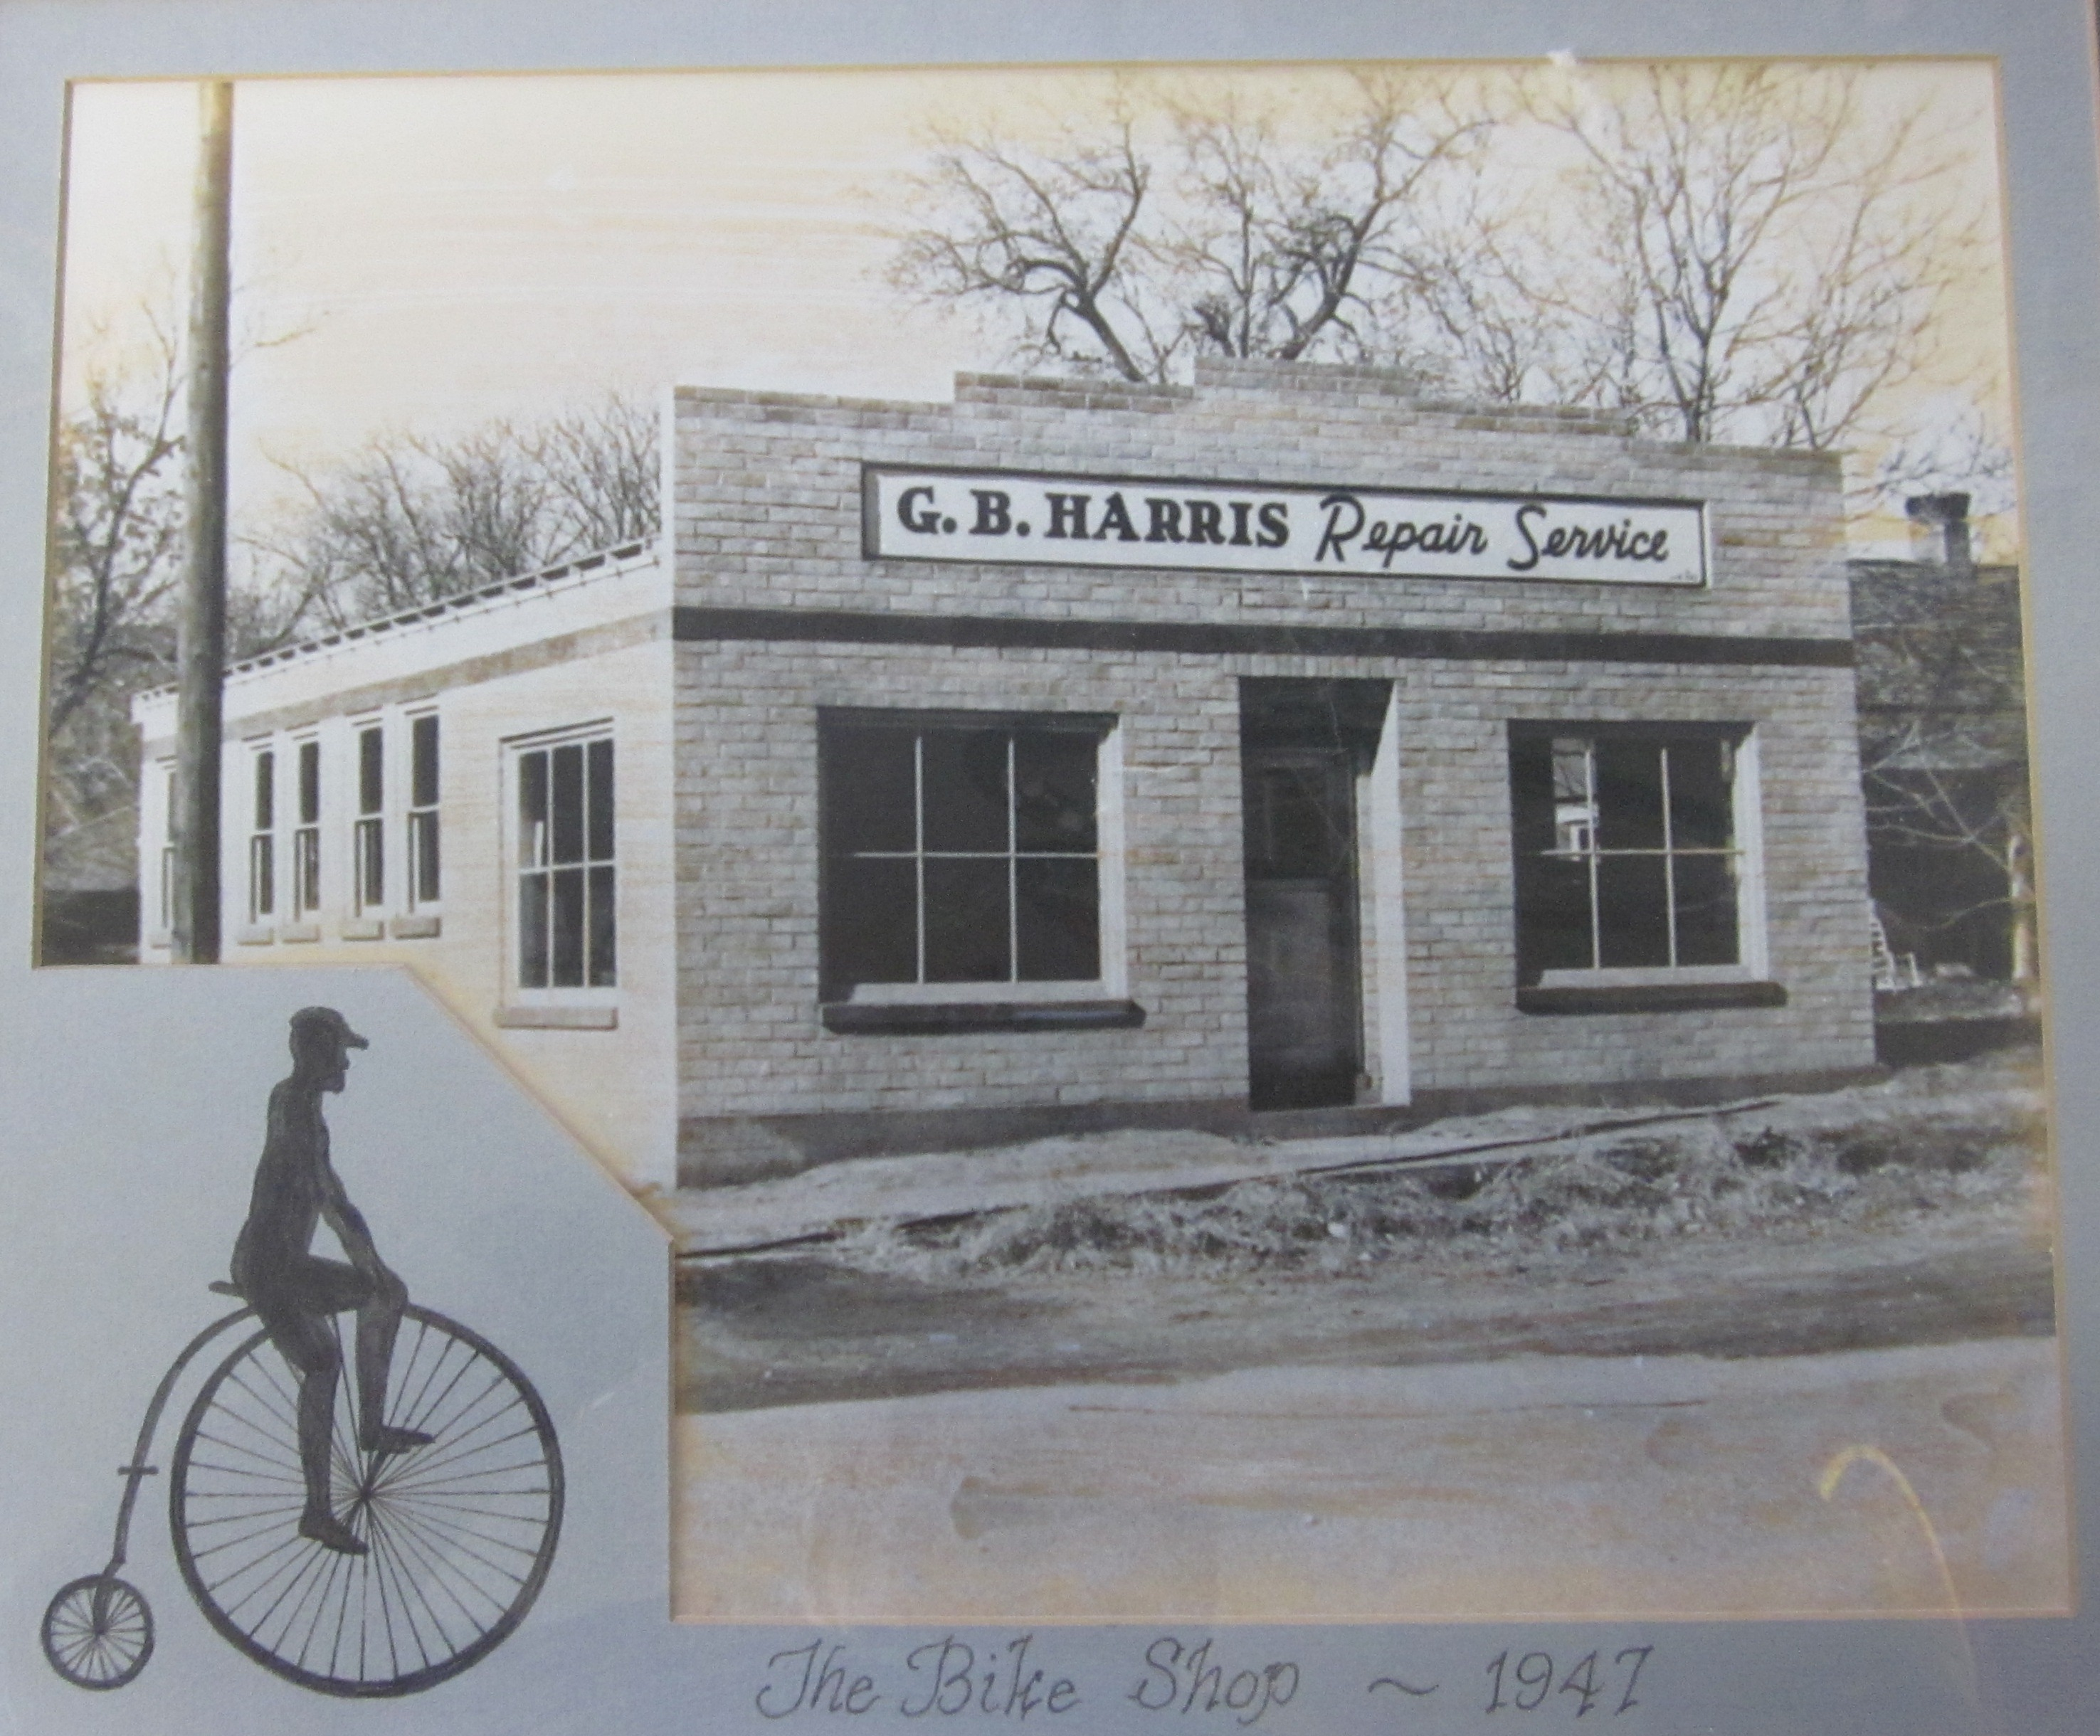 G. B. Harris Repair Service building